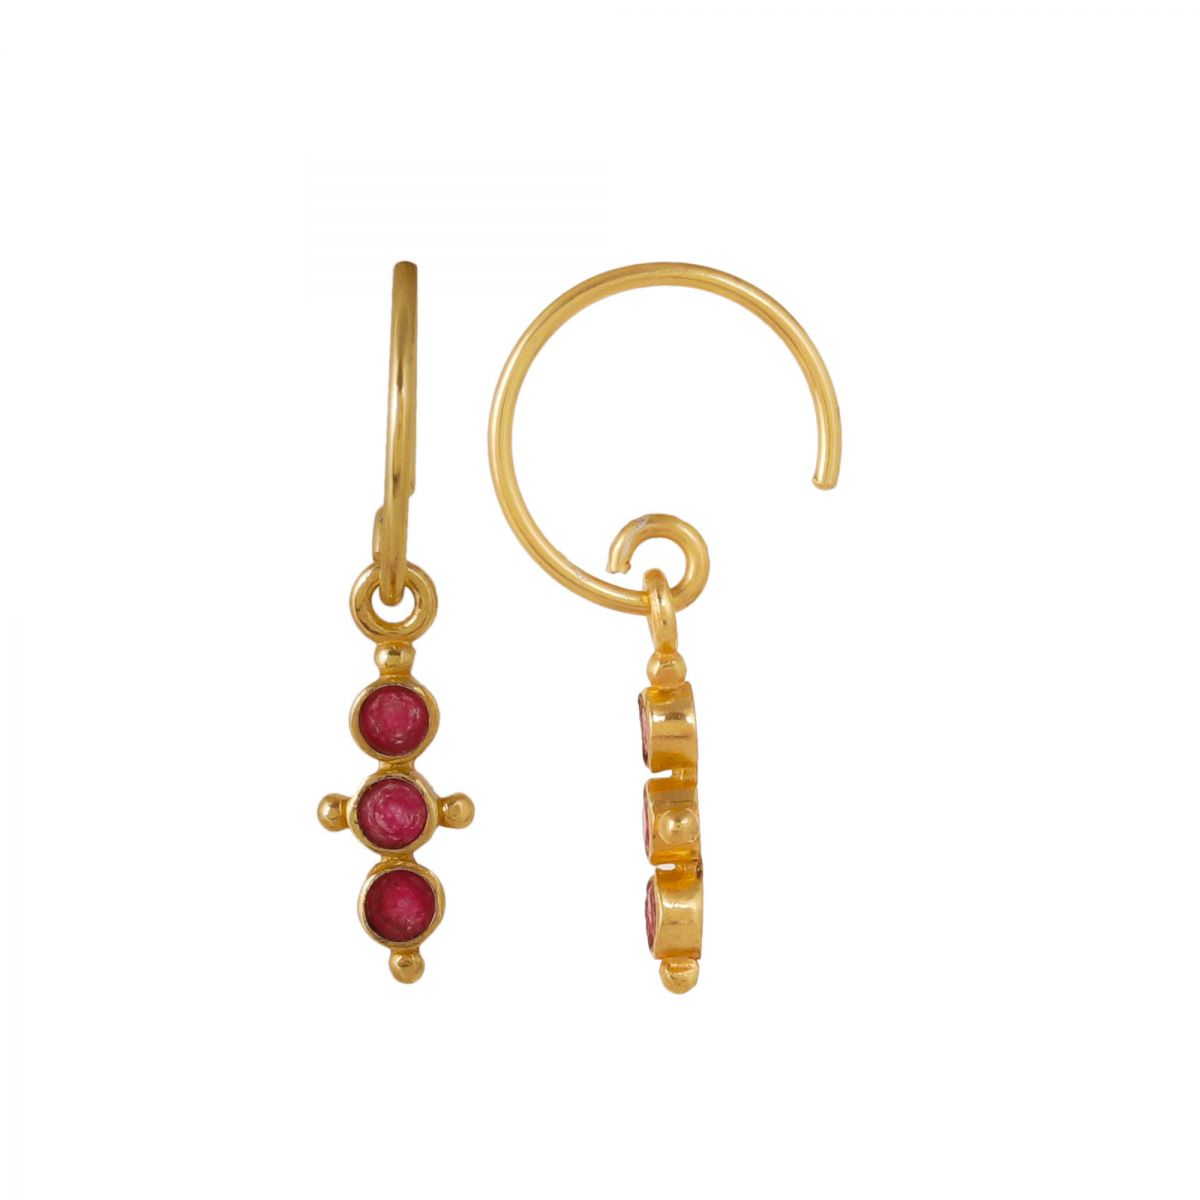 f earring three little hanging ruby stones gold plated